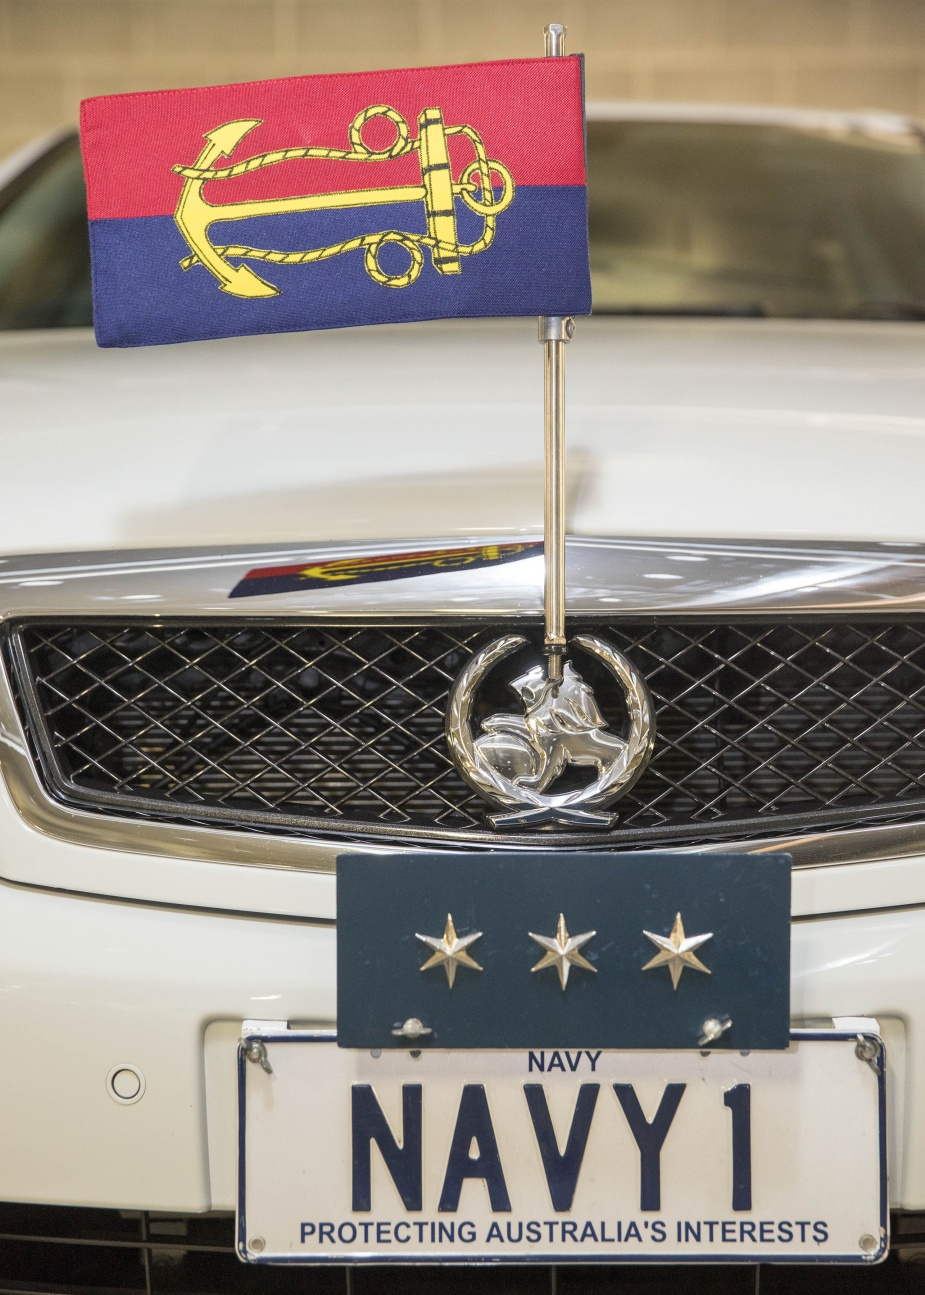 Chief of Navy's staff car displaying his personal flag, star plate and unique license plate.